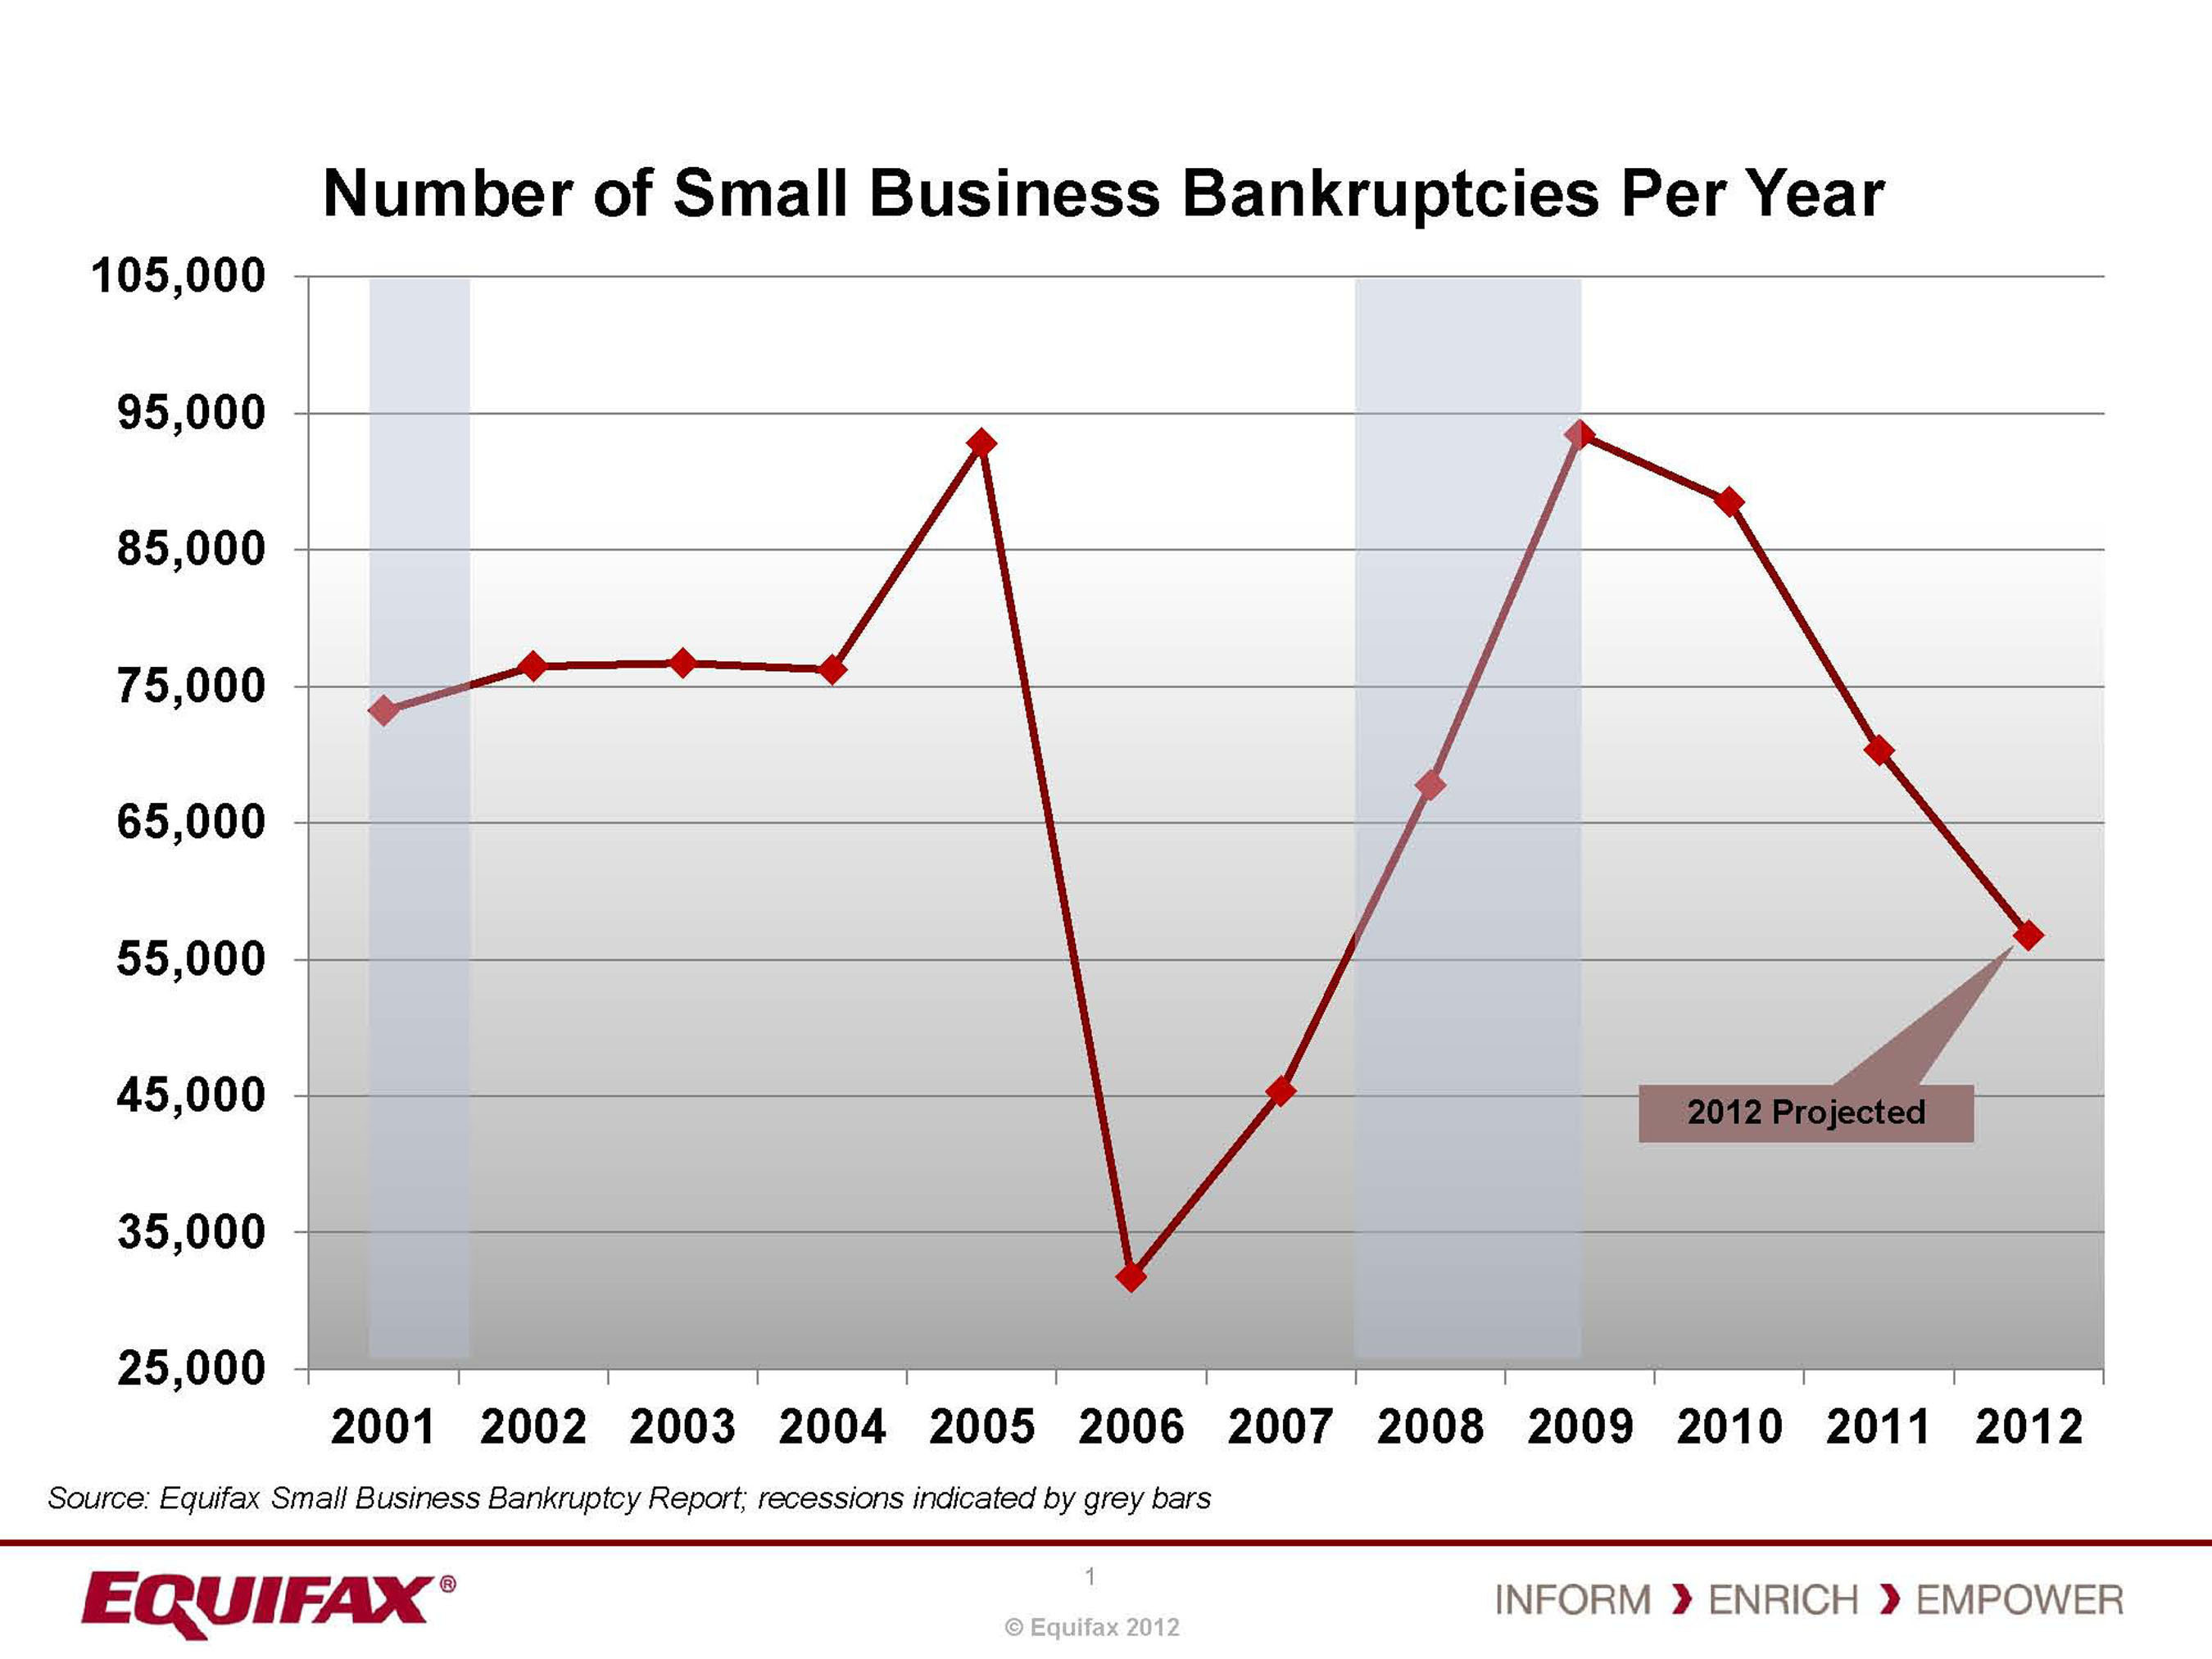 """The shrinking number of small business bankruptcies is not surprising,"" says Crews Cutts, Equifax's Chief Economist.  (PRNewsFoto/Equifax)"